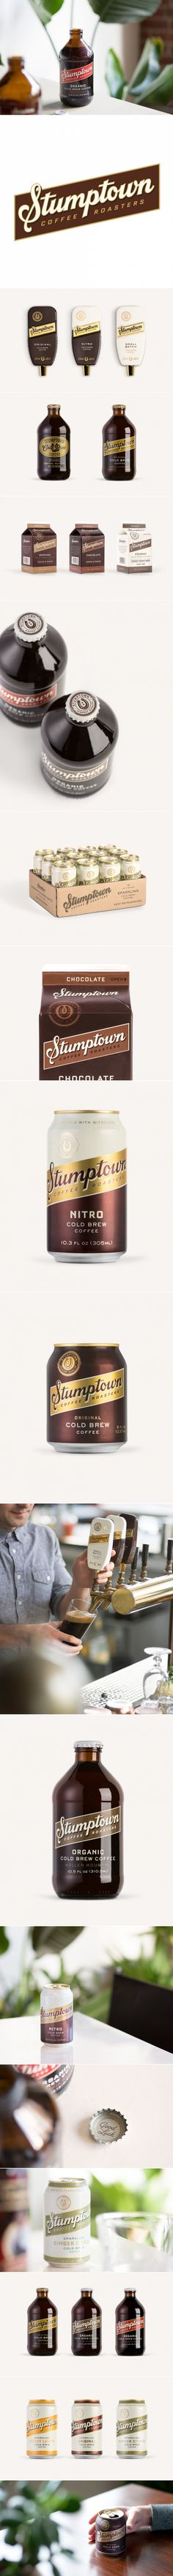 Stumptown Found Beer-spiration For Their Cold Brew Line — The Dieline | Packaging & Branding Design & Innovation News